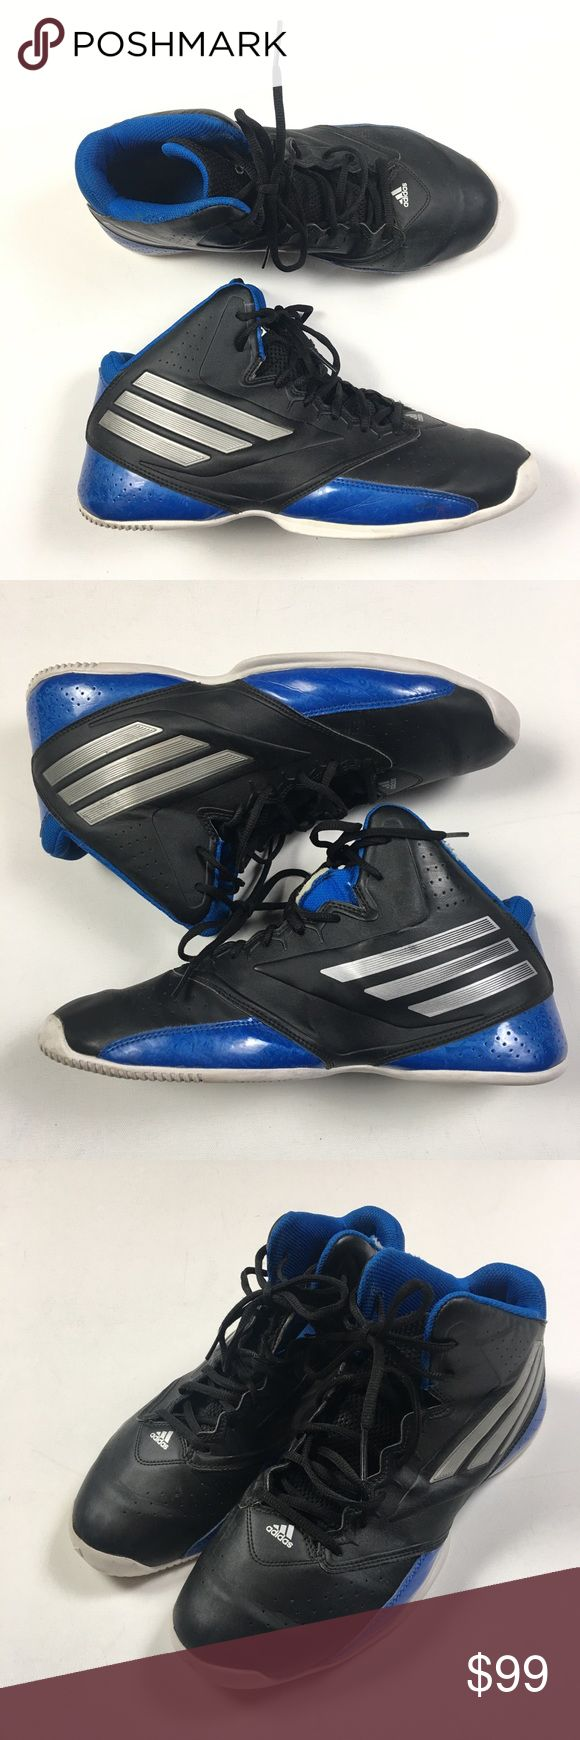 Adidas Basketball Shoe Sz 11 A66 Good condition. adidas Shoes Athletic Shoes